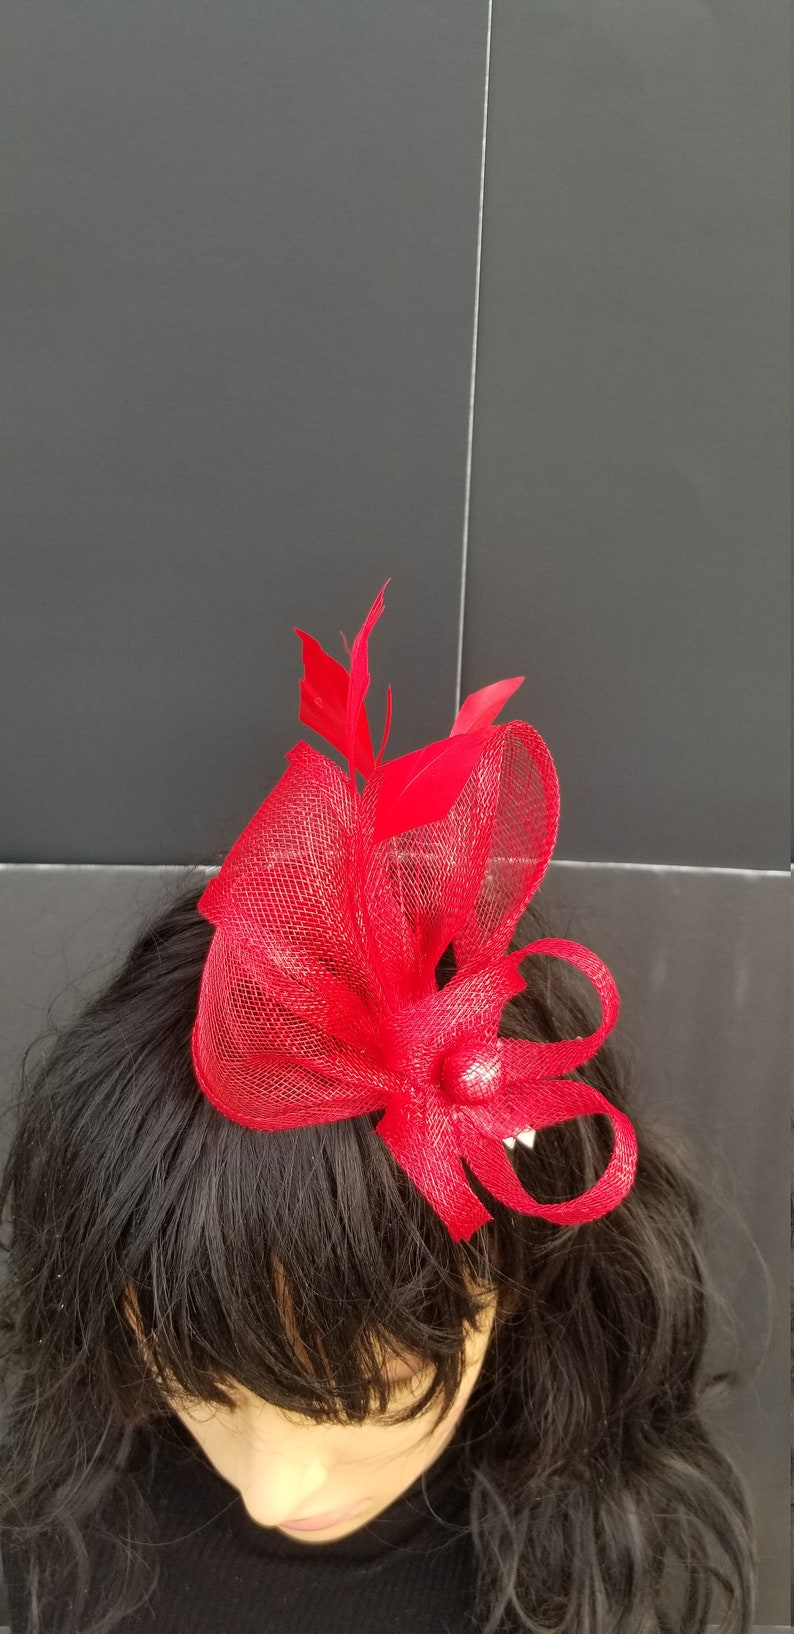 Kentucky Derby Bridesmaids Hat Tea Ascot Race Melbourne Race Cocktail Party Kate Middleton  Crownjewell Silver Gray Fascinator